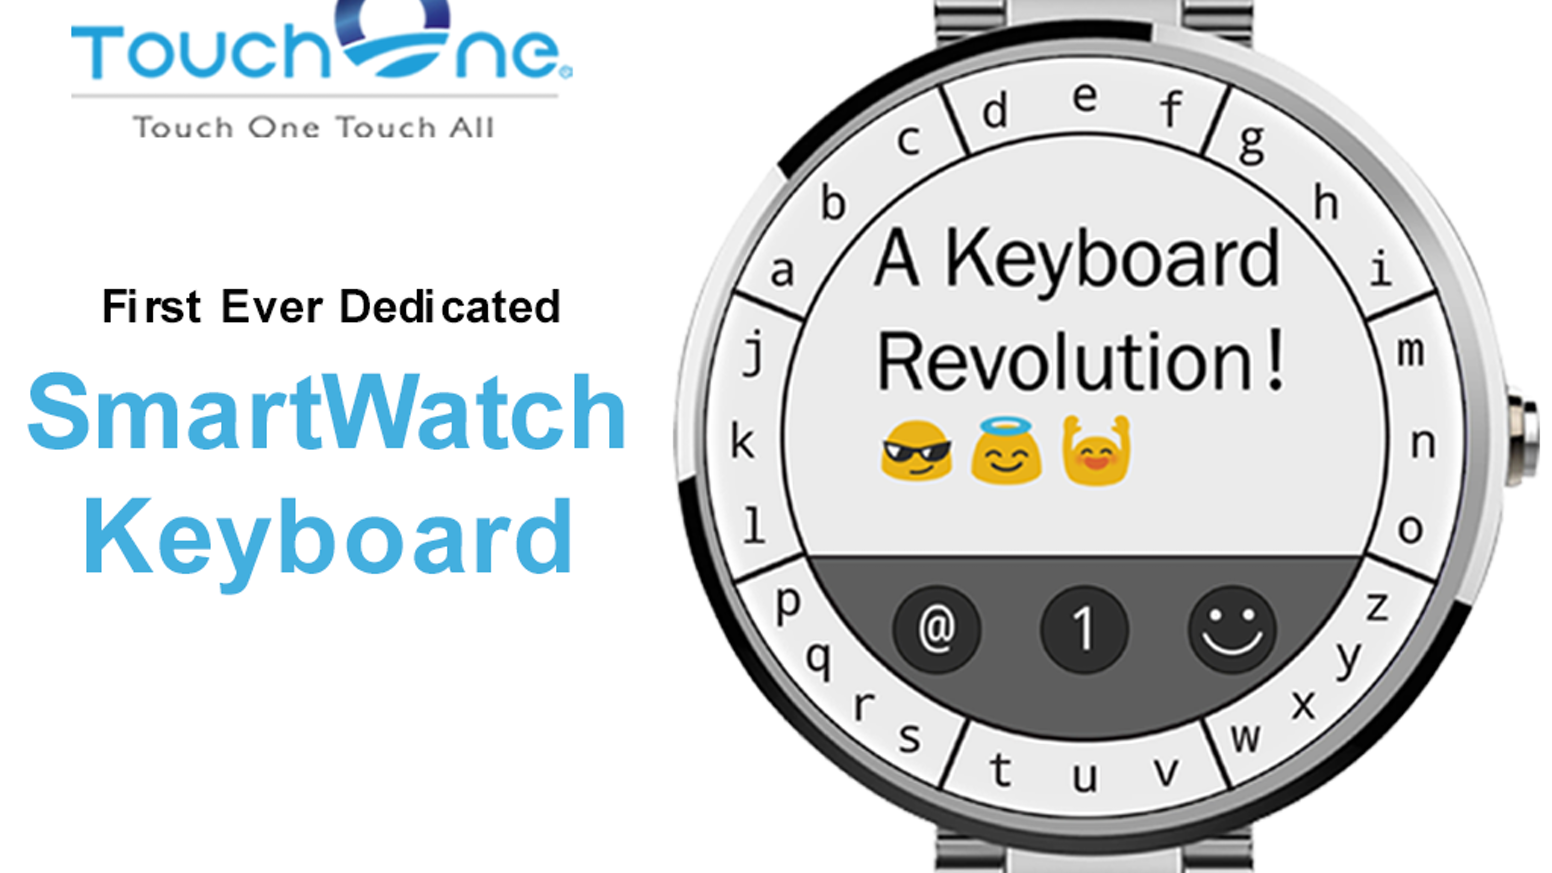 The TouchOne Keyboard is the first dedicated smartwatch keyboard that supports both circular and square devices